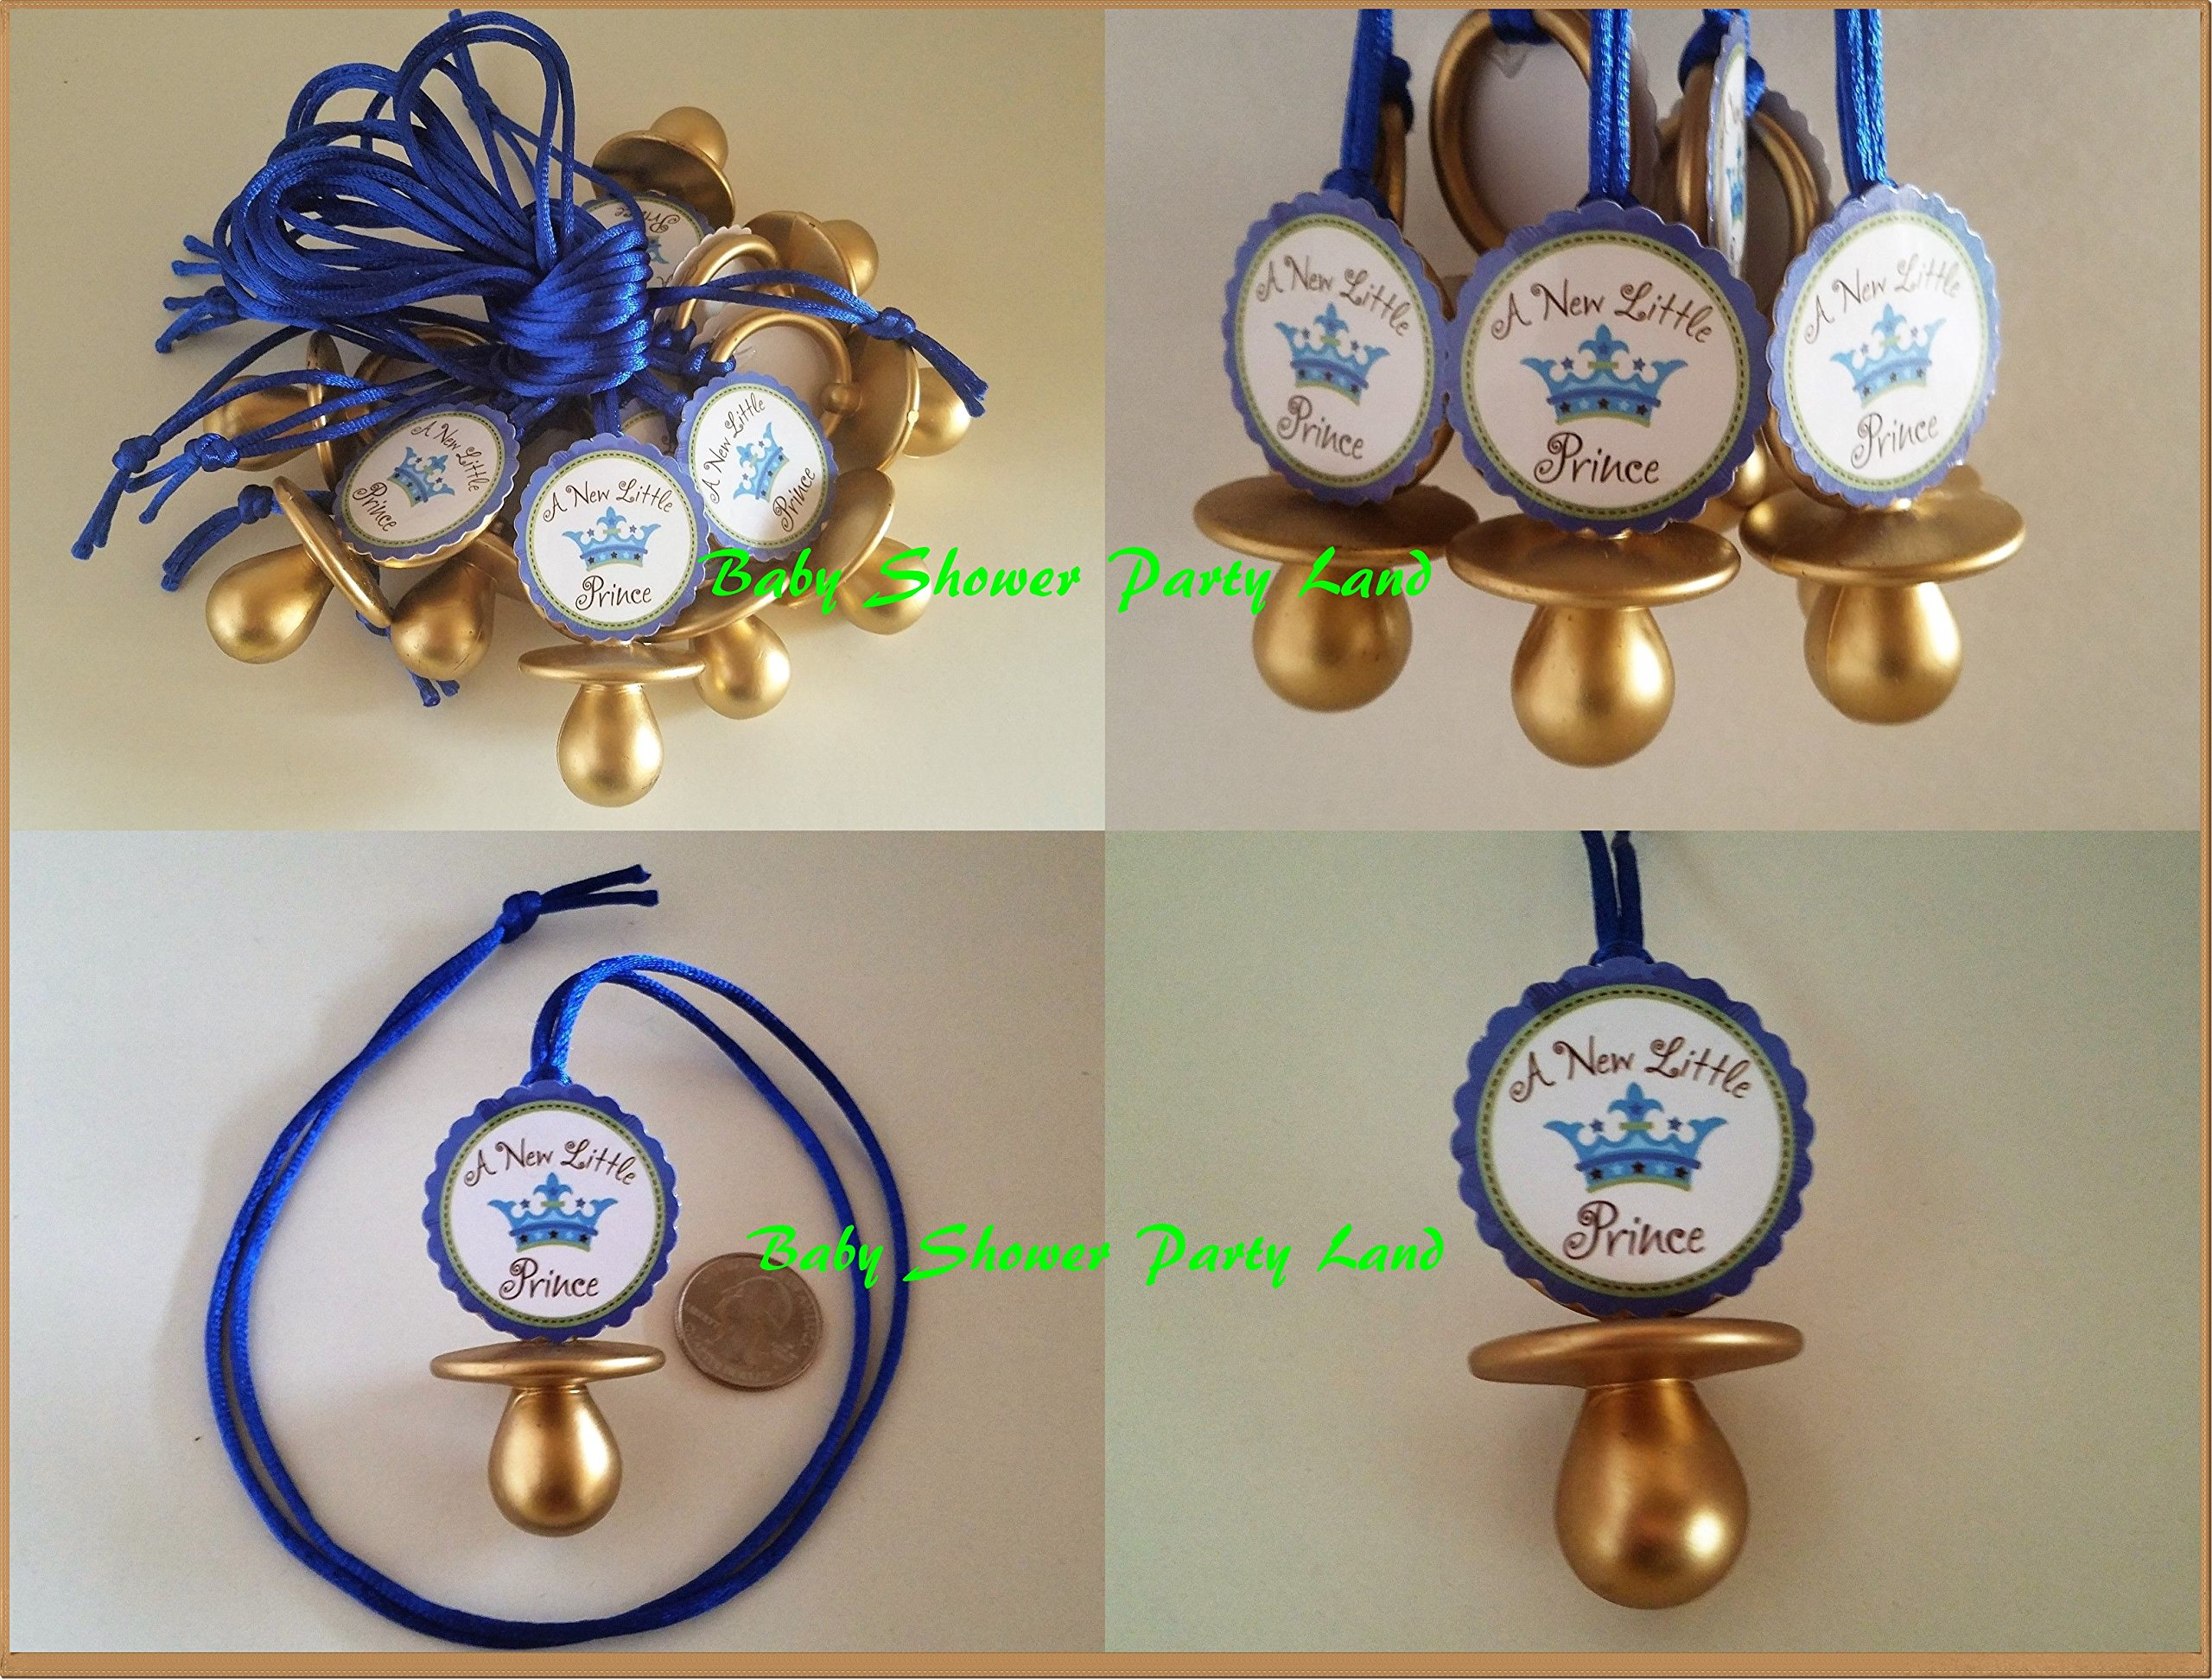 12 Prince Pacifier Necklace Its a Boy Baby Shower Favors Prize Games Decorations